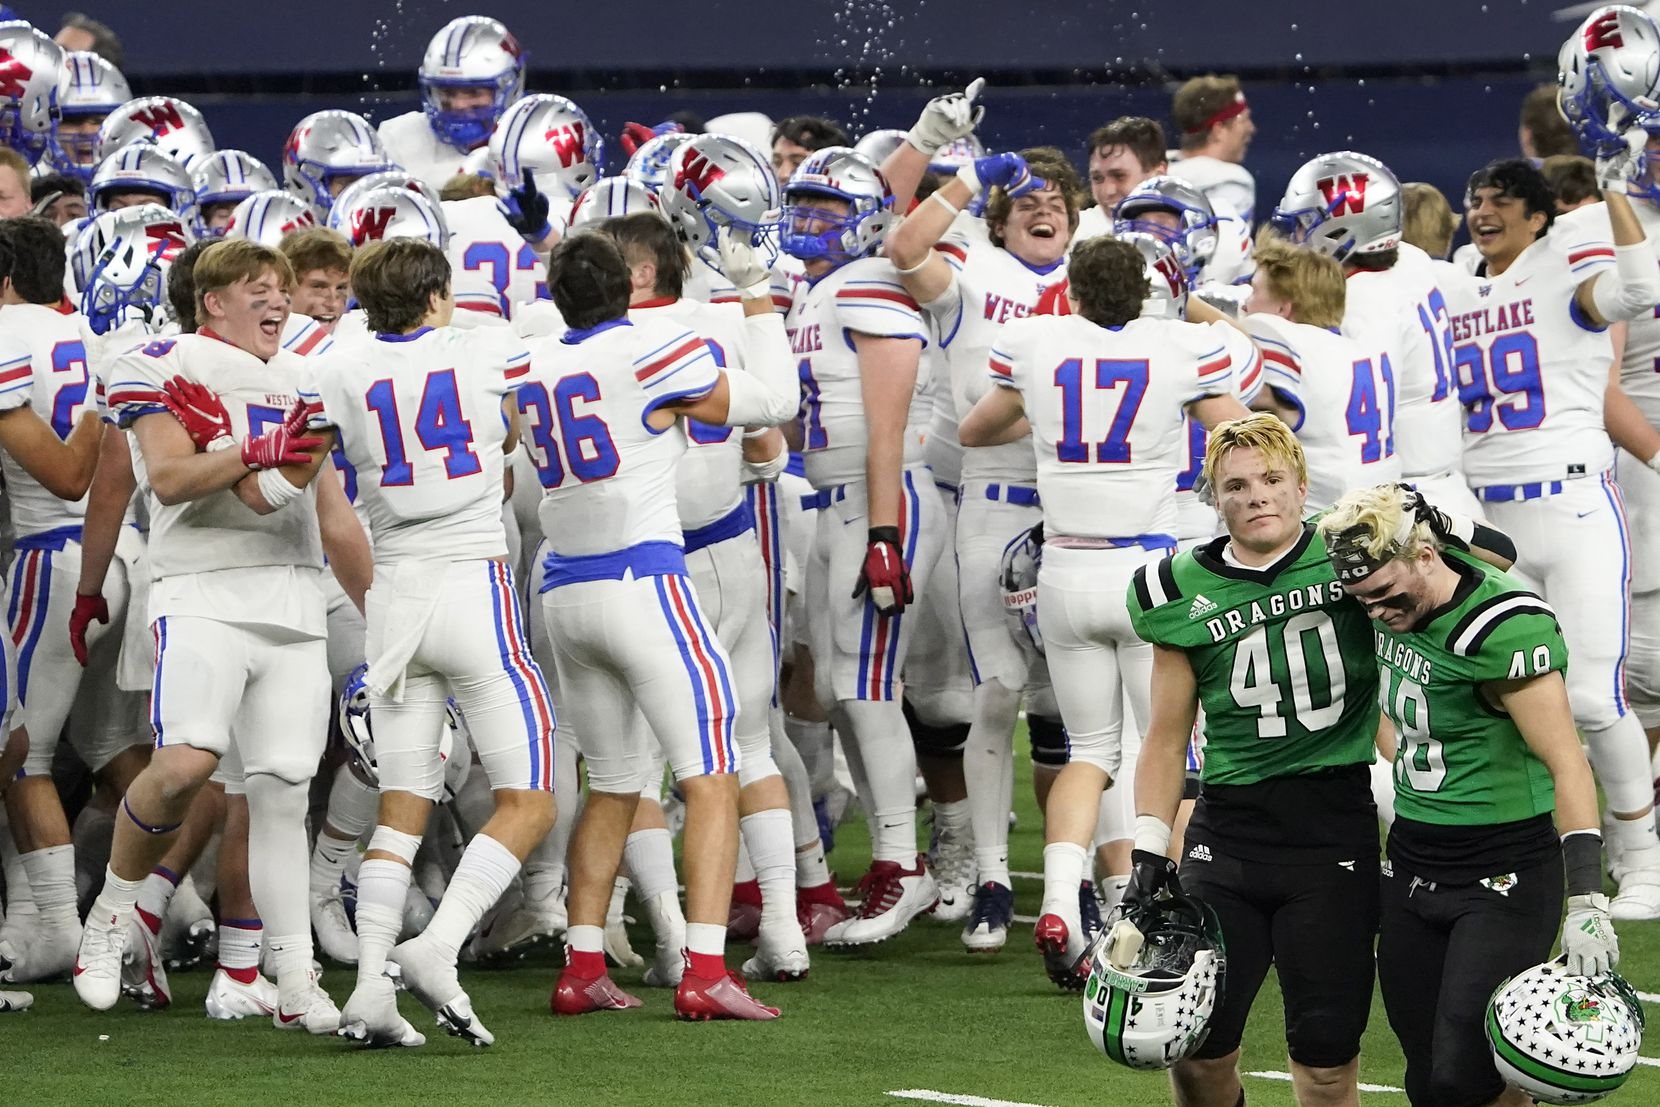 Southlake Carroll linebackers Allan Kleiman (40) and Aiden Peil (48)  leave the field while Austin Westlake players celebrate after a 52-34 Westlake victory in the Class 6A Division I state football championship game at AT&T Stadium on Saturday, Jan. 16, 2021, in Arlington, Texas.